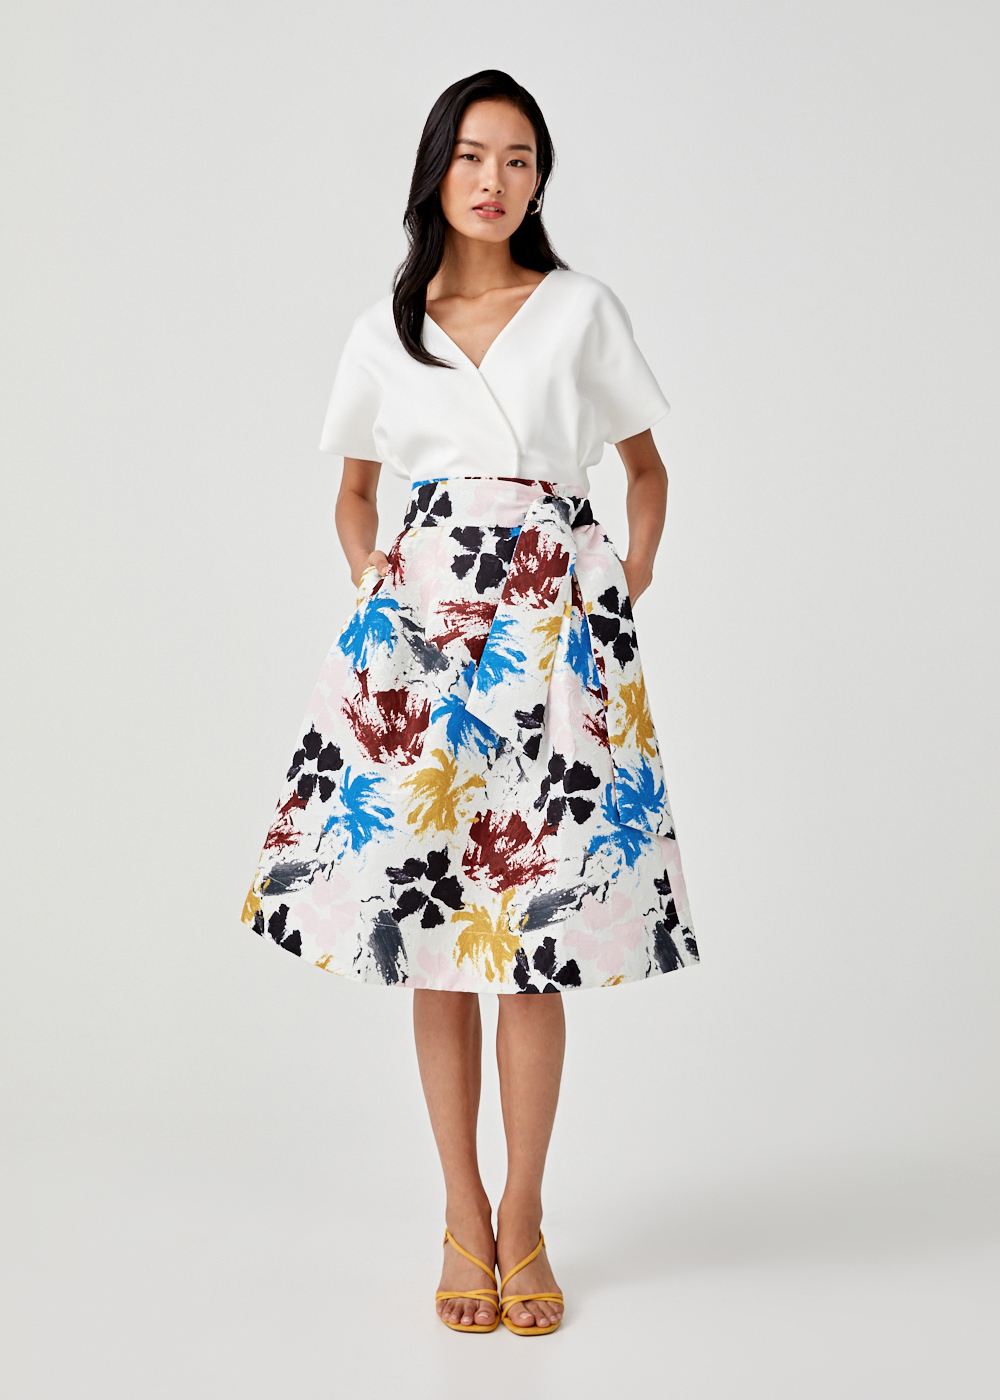 Baize Sash Tie Midi Skirt in Floral Symphony